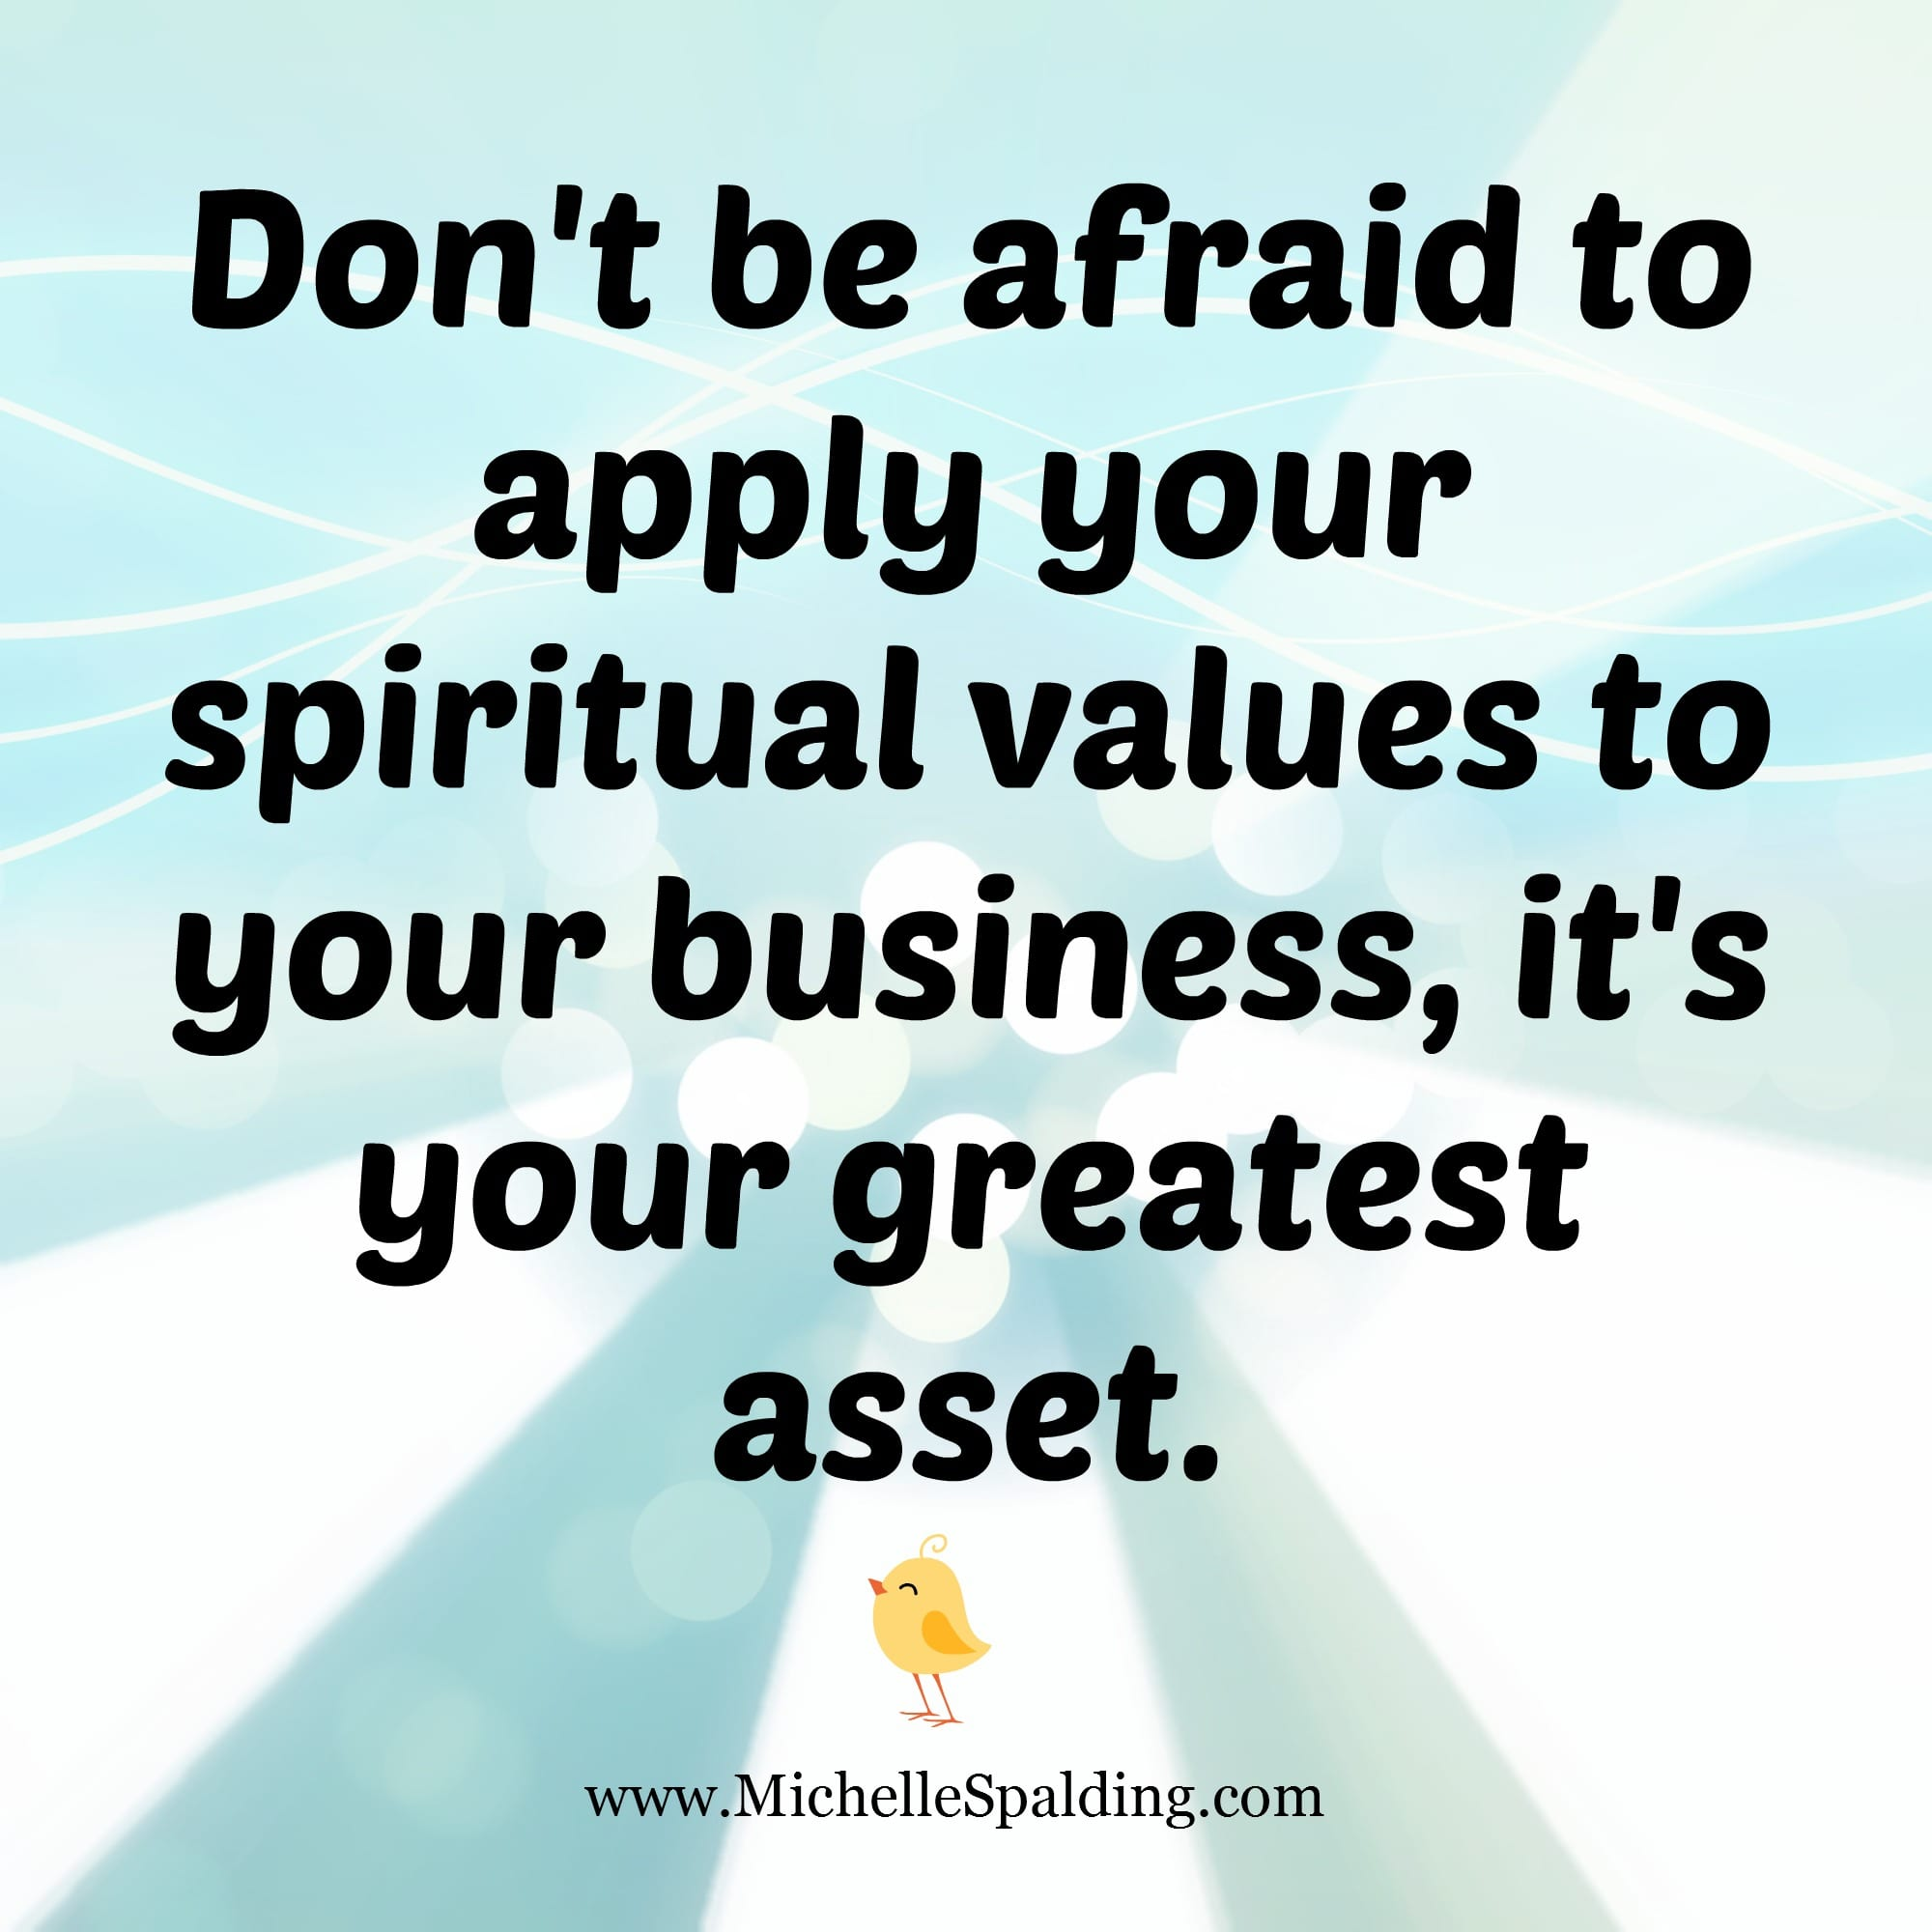 Don't be afraid to apply your spiritual values to your business, it's your greatest asset.